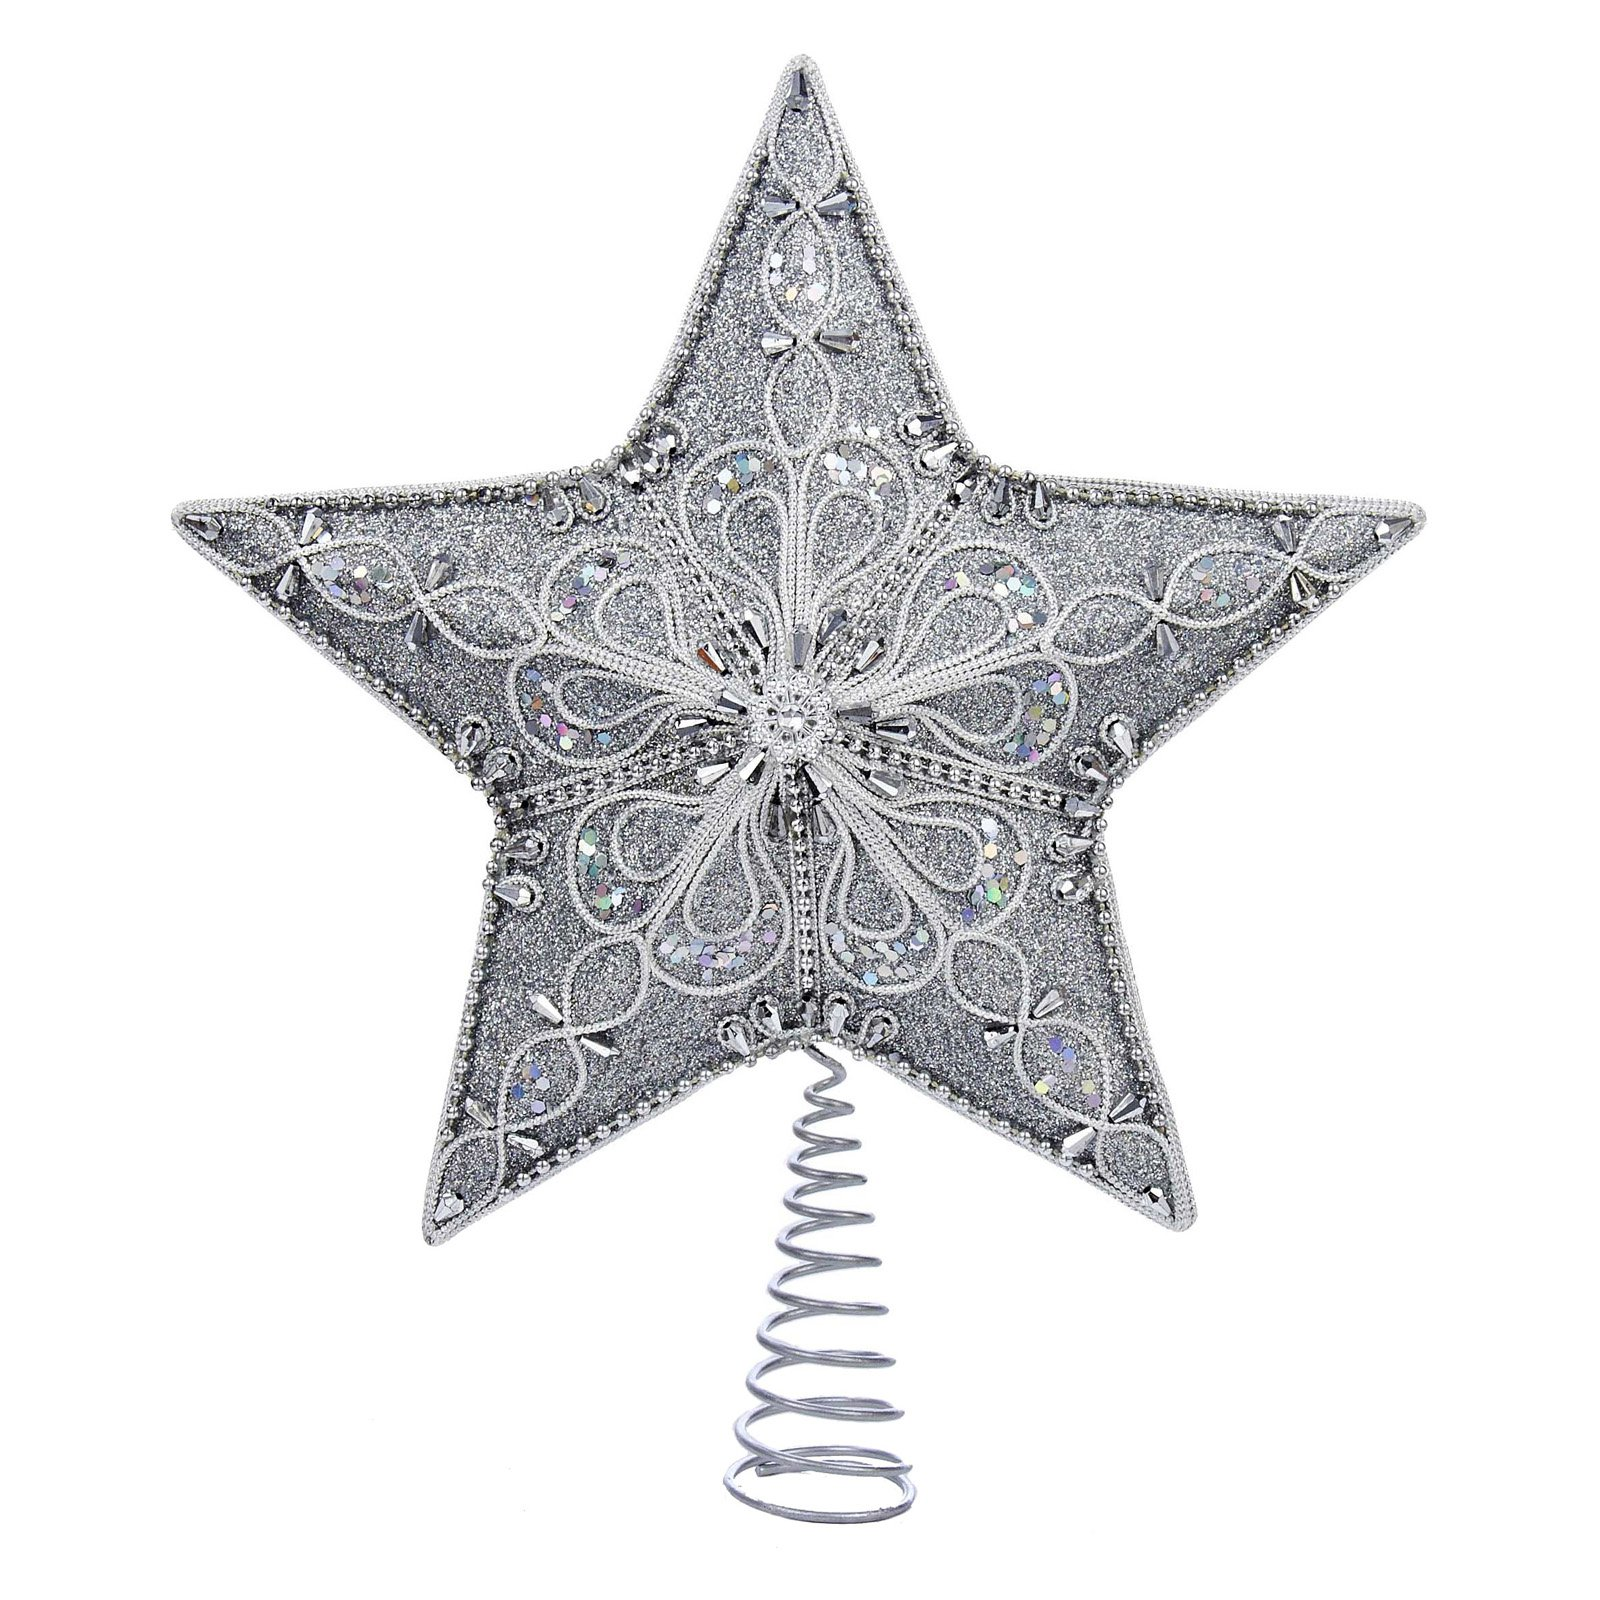 Kurt Adler 13.5 in. Silver Star Tree Topper